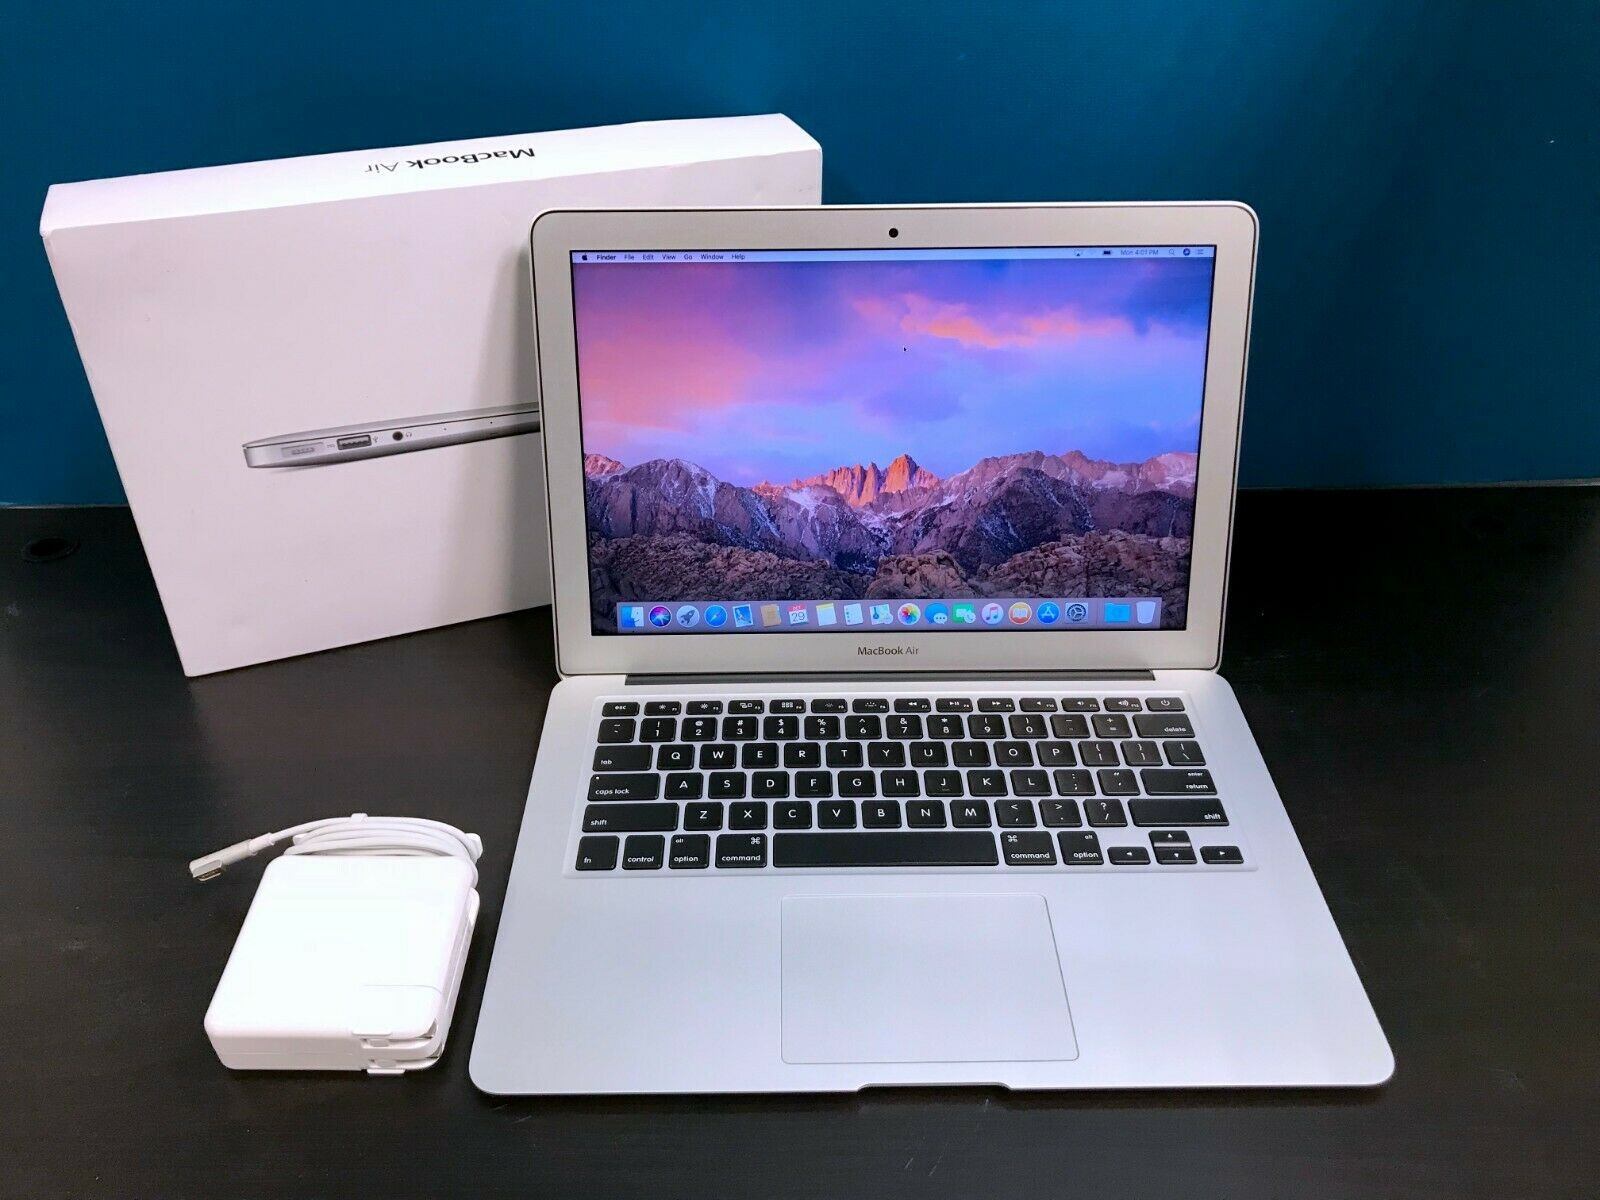 Apple MacBook Air 13.3 | SSD | OS2019 | WARRANTY | Multi-Touch | GRAY |. Buy it now for 499.00